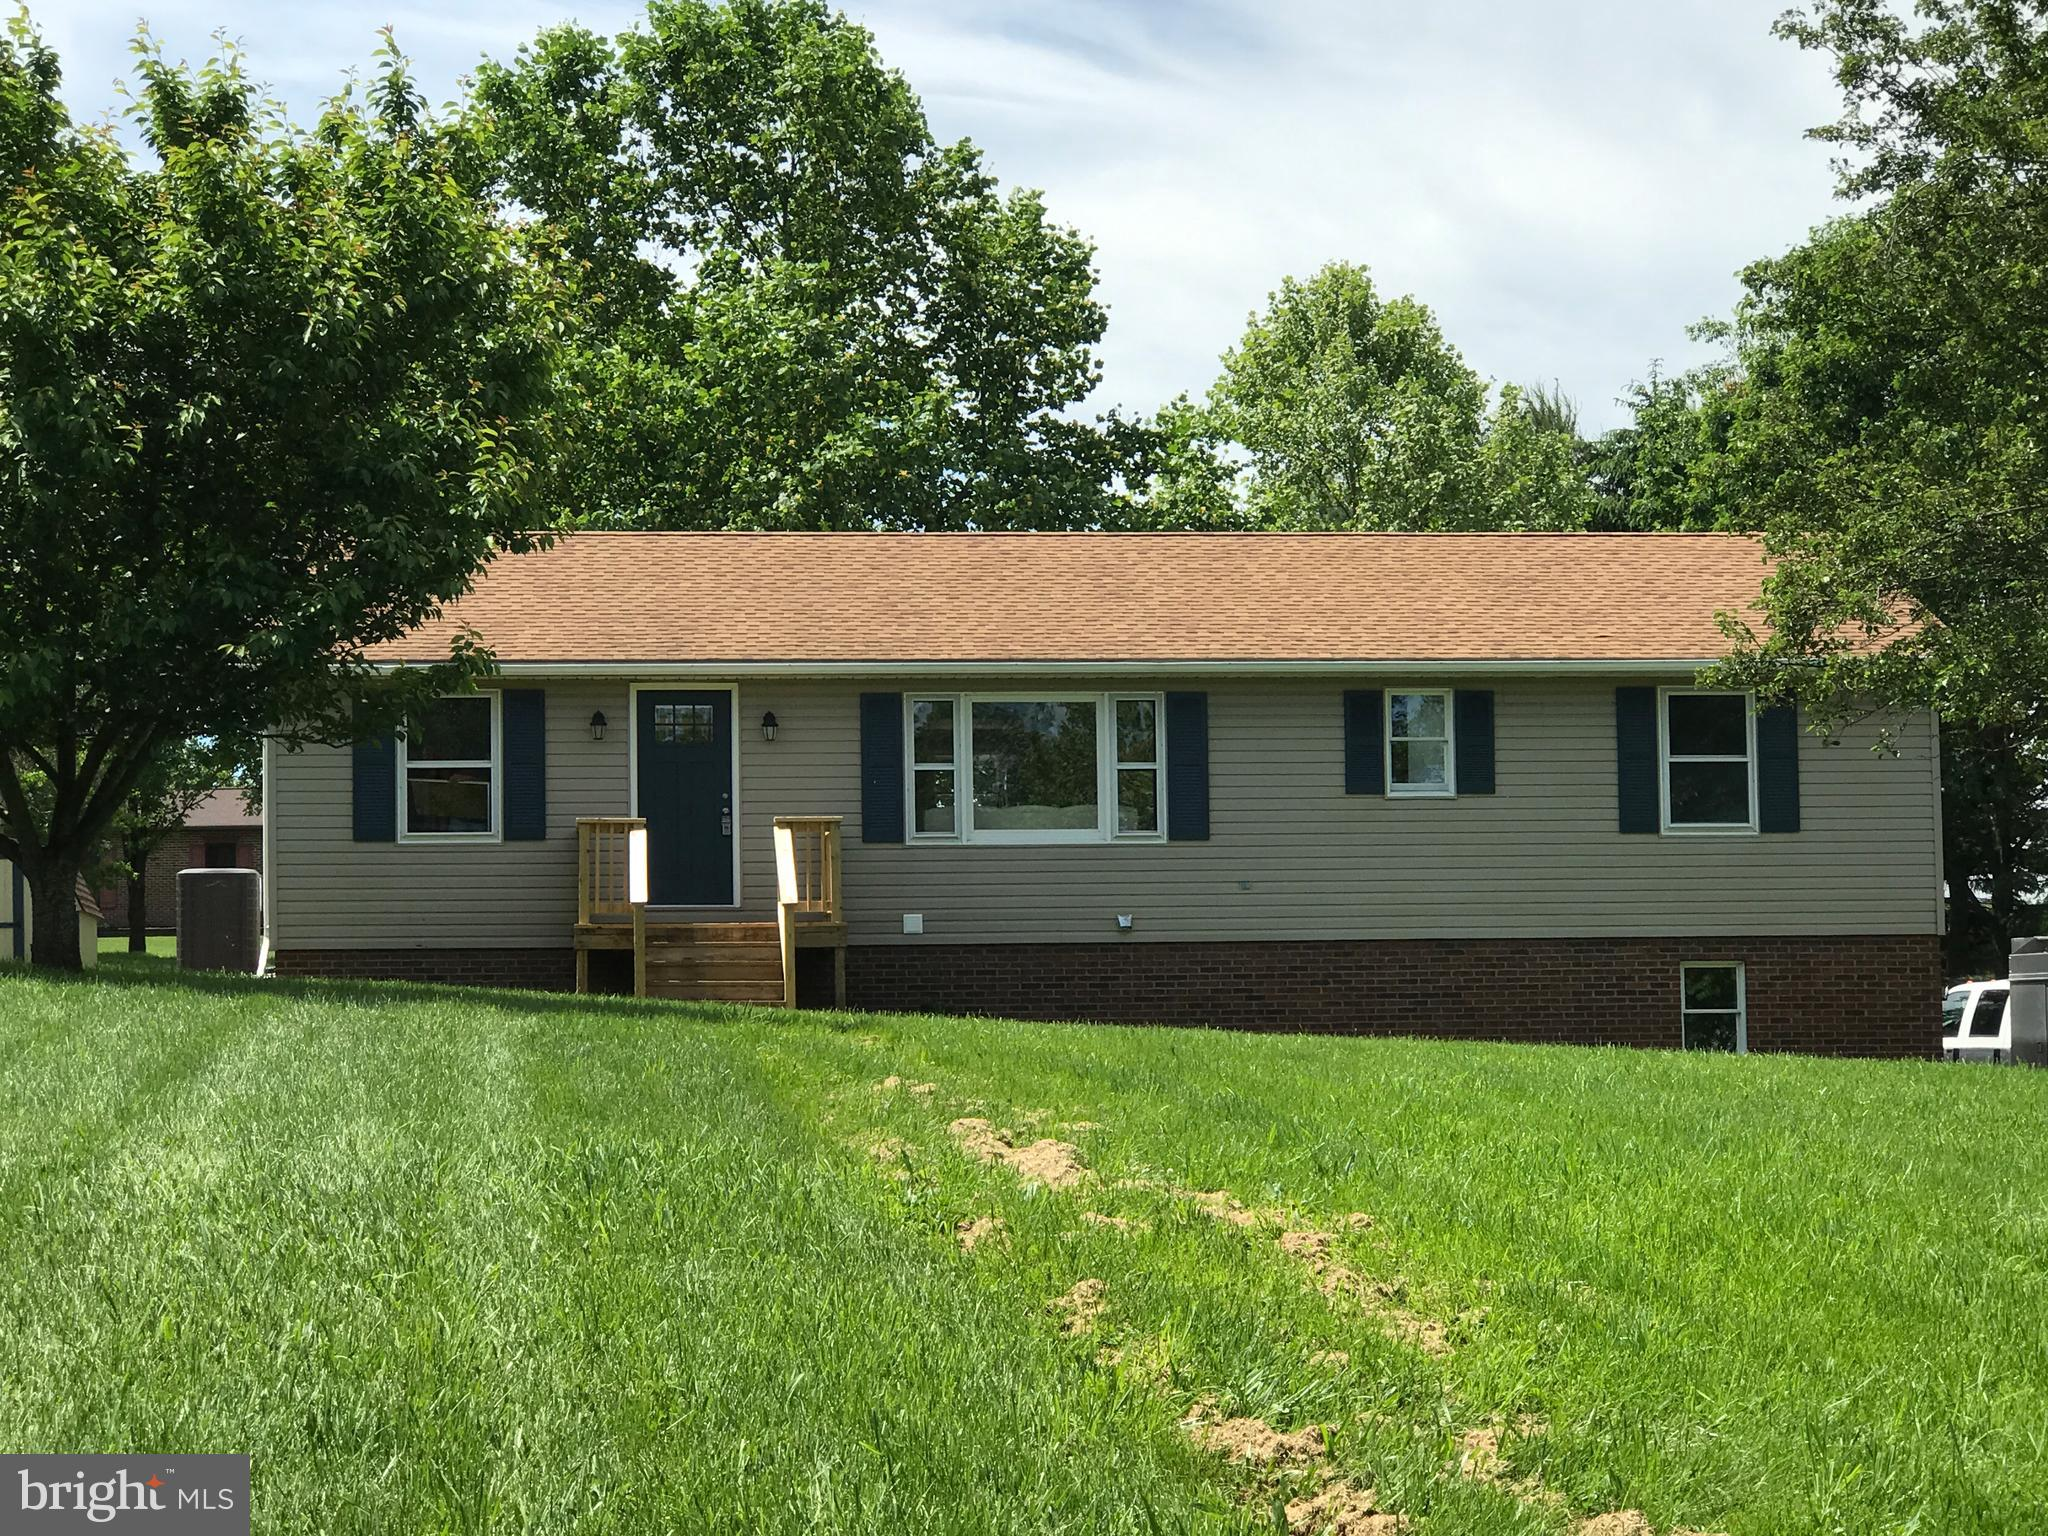 13162 INDEPENDENCE ROAD, CLEAR SPRING, MD 21722